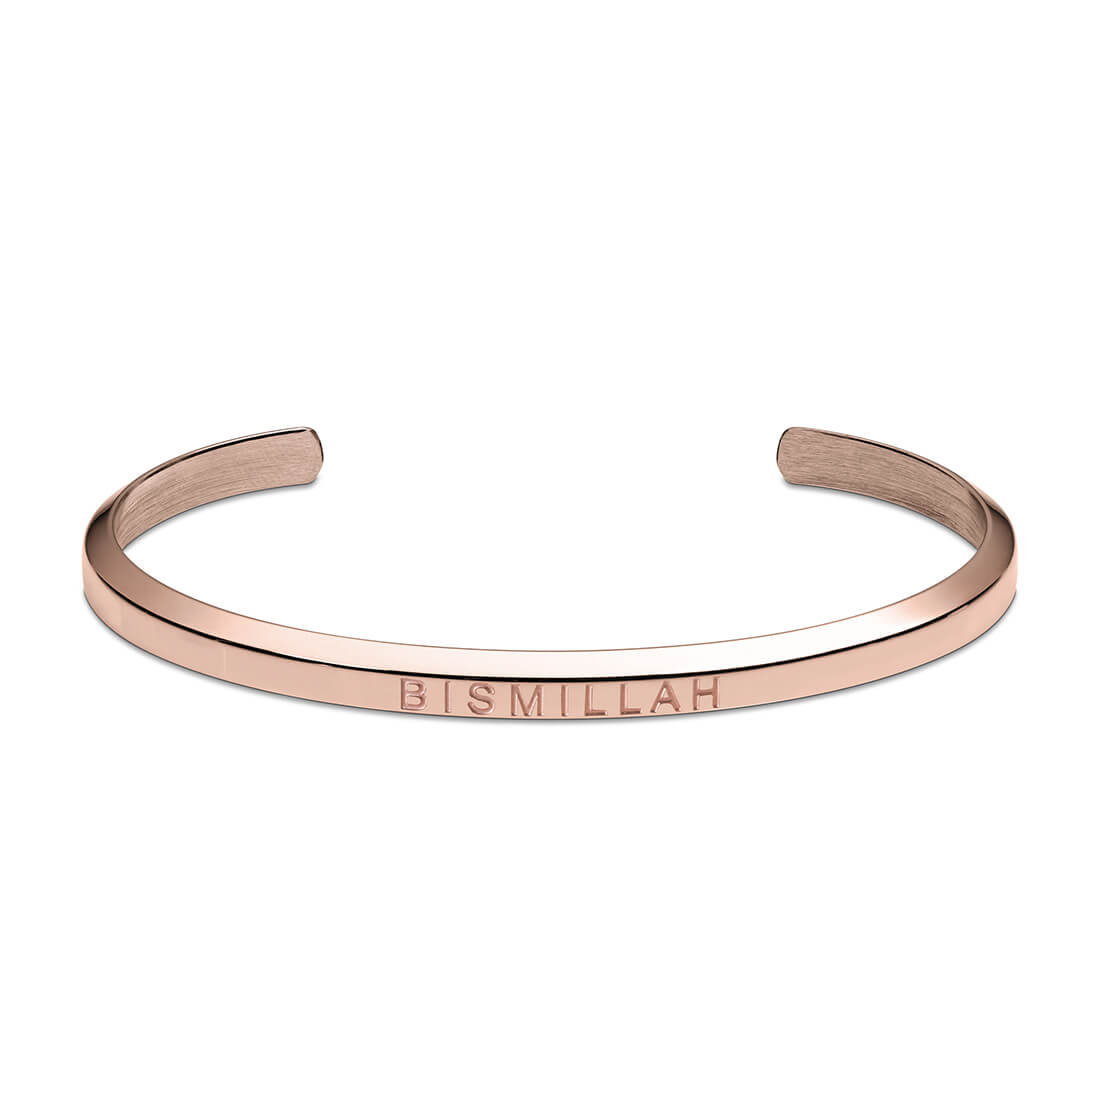 Bismillah Cuff Bracelet in Rose Gold by Crscnt Moon